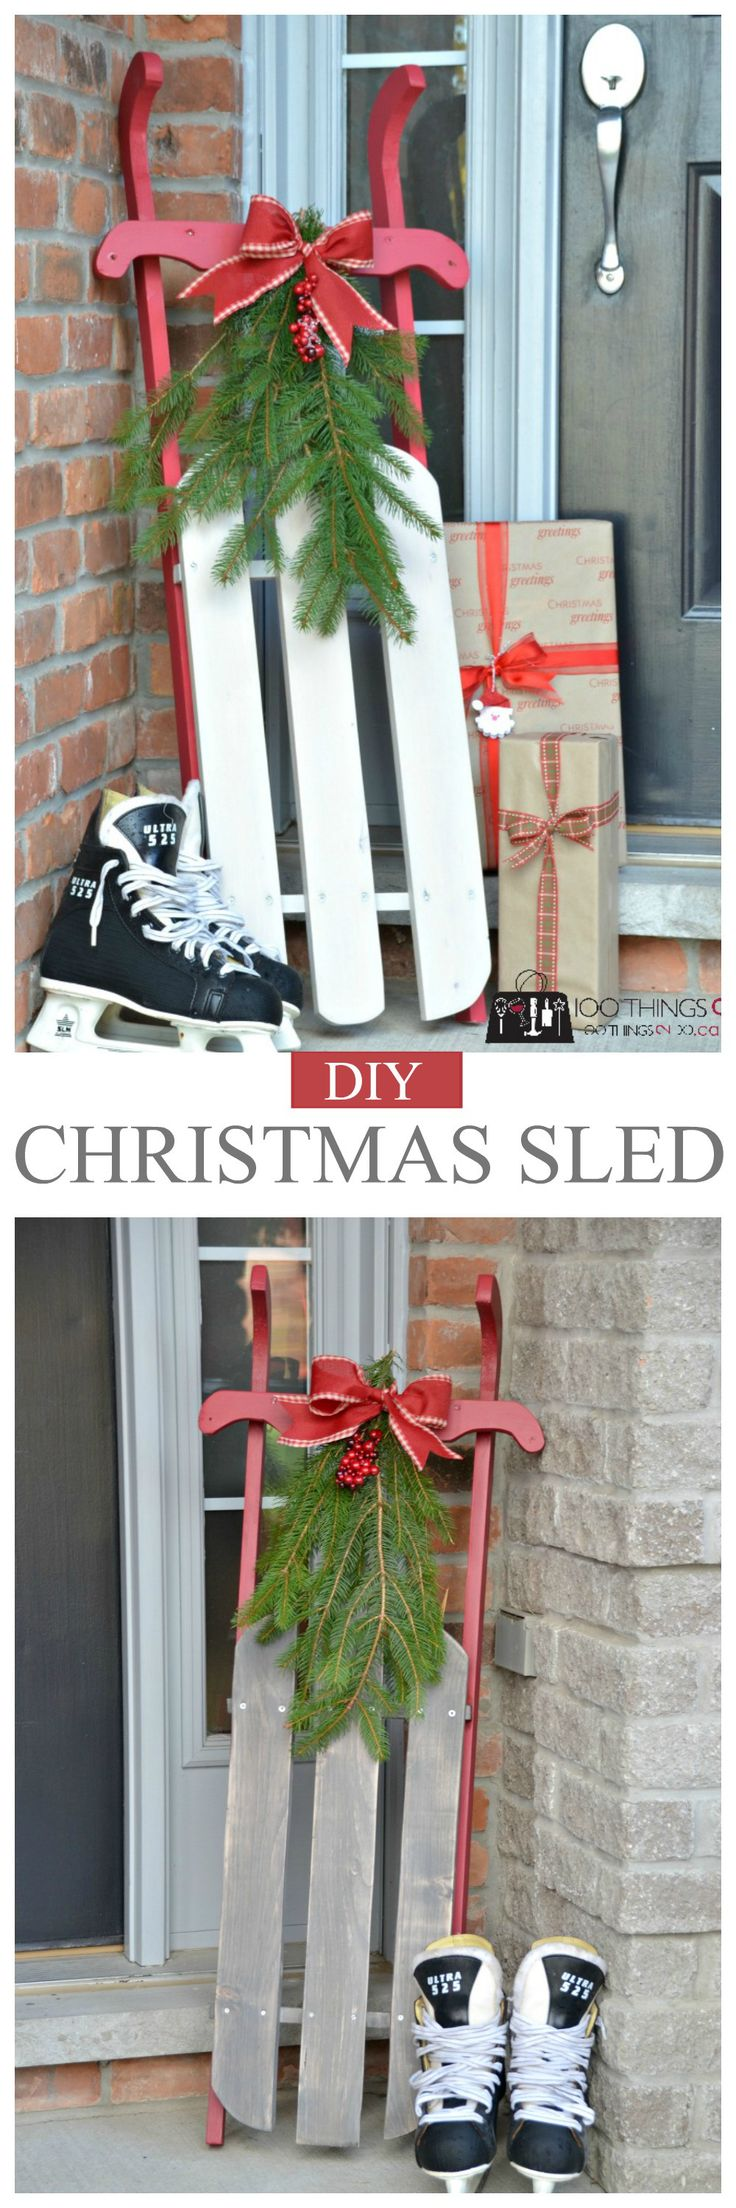 sled craft ideas best 25 sled ideas on sled decor 2945